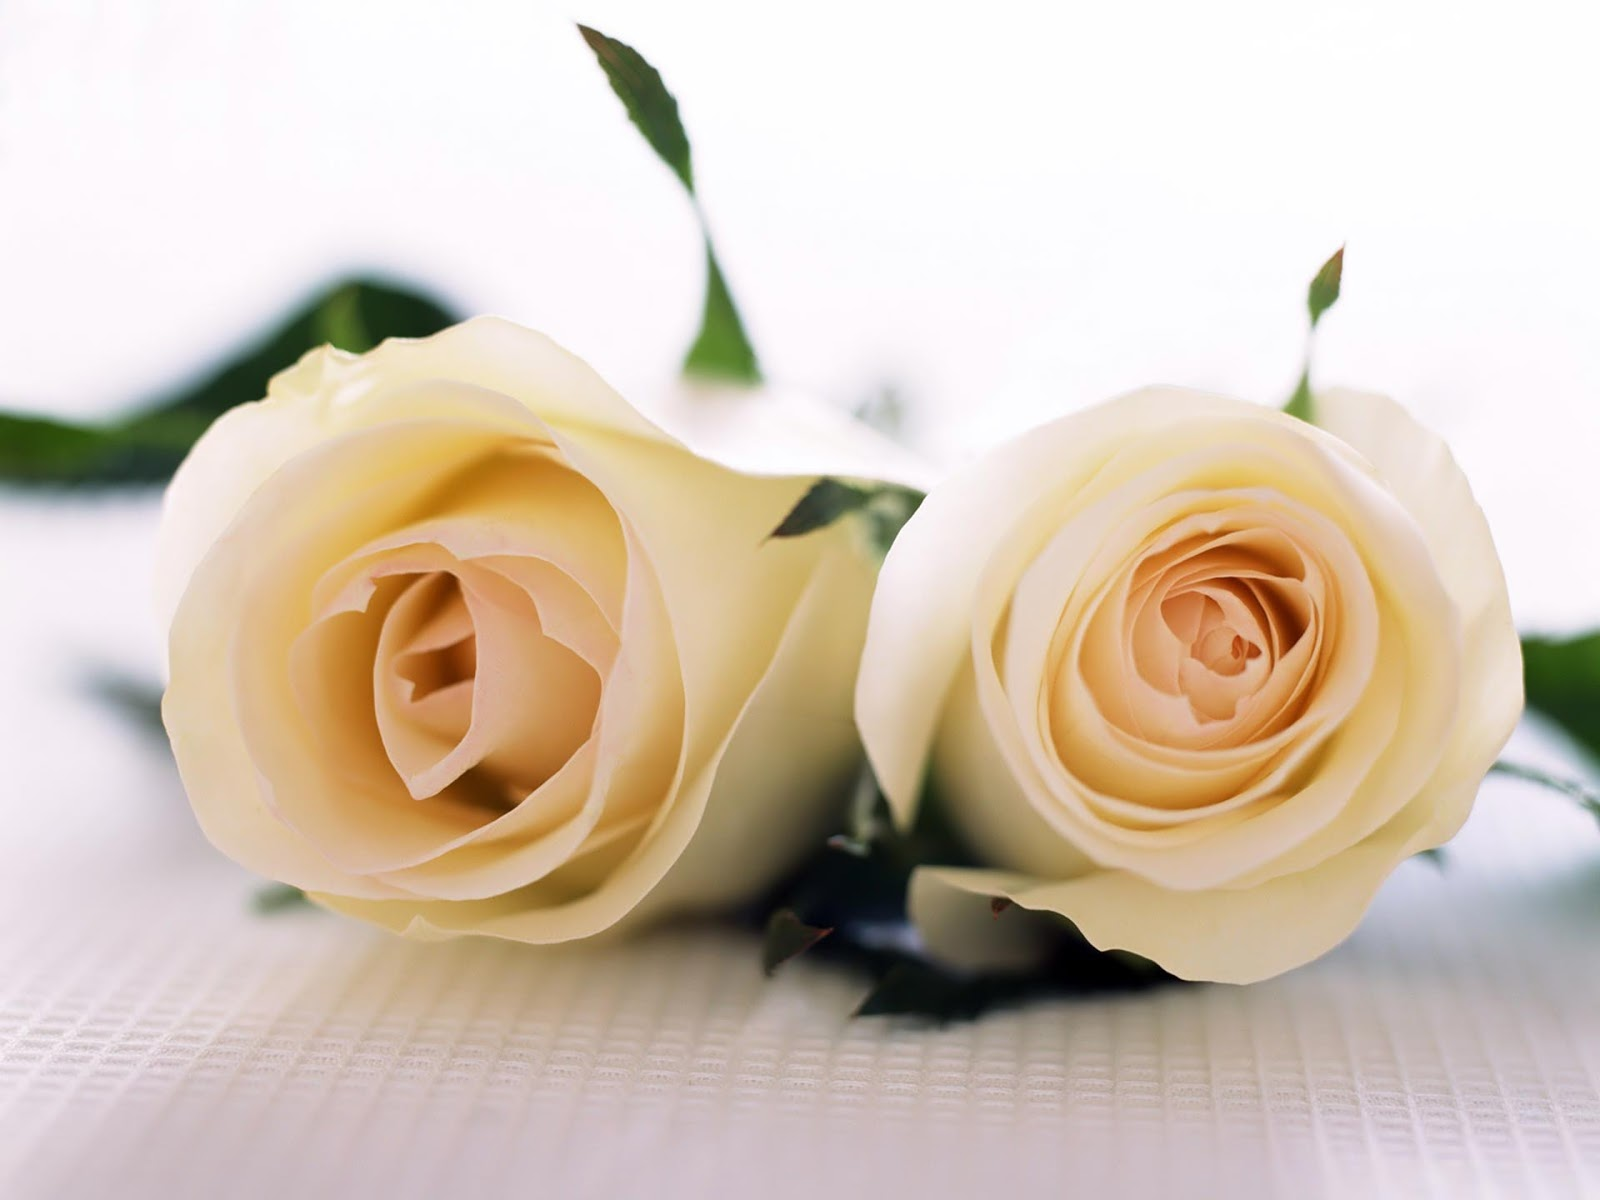 white rose backgrounds wallpapers - photo #20